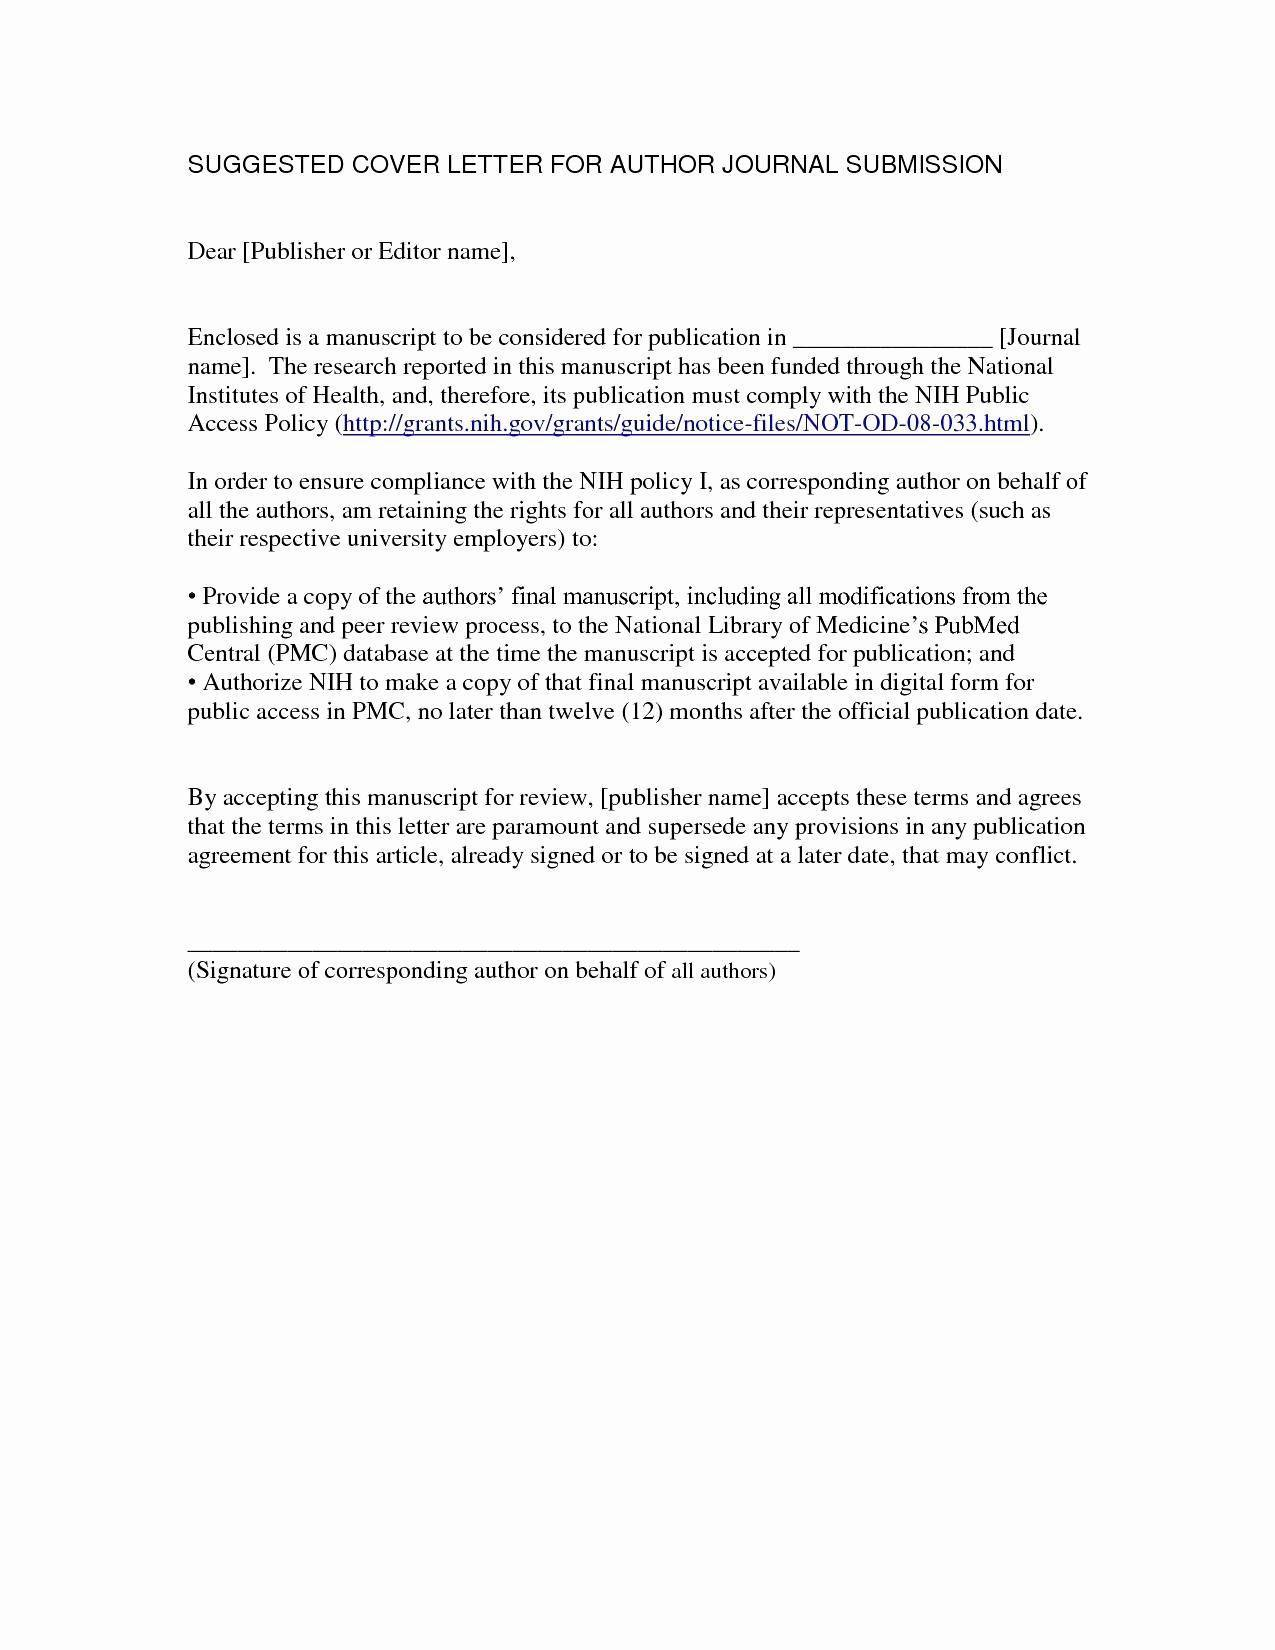 Office Lottery Pool Agreement Template